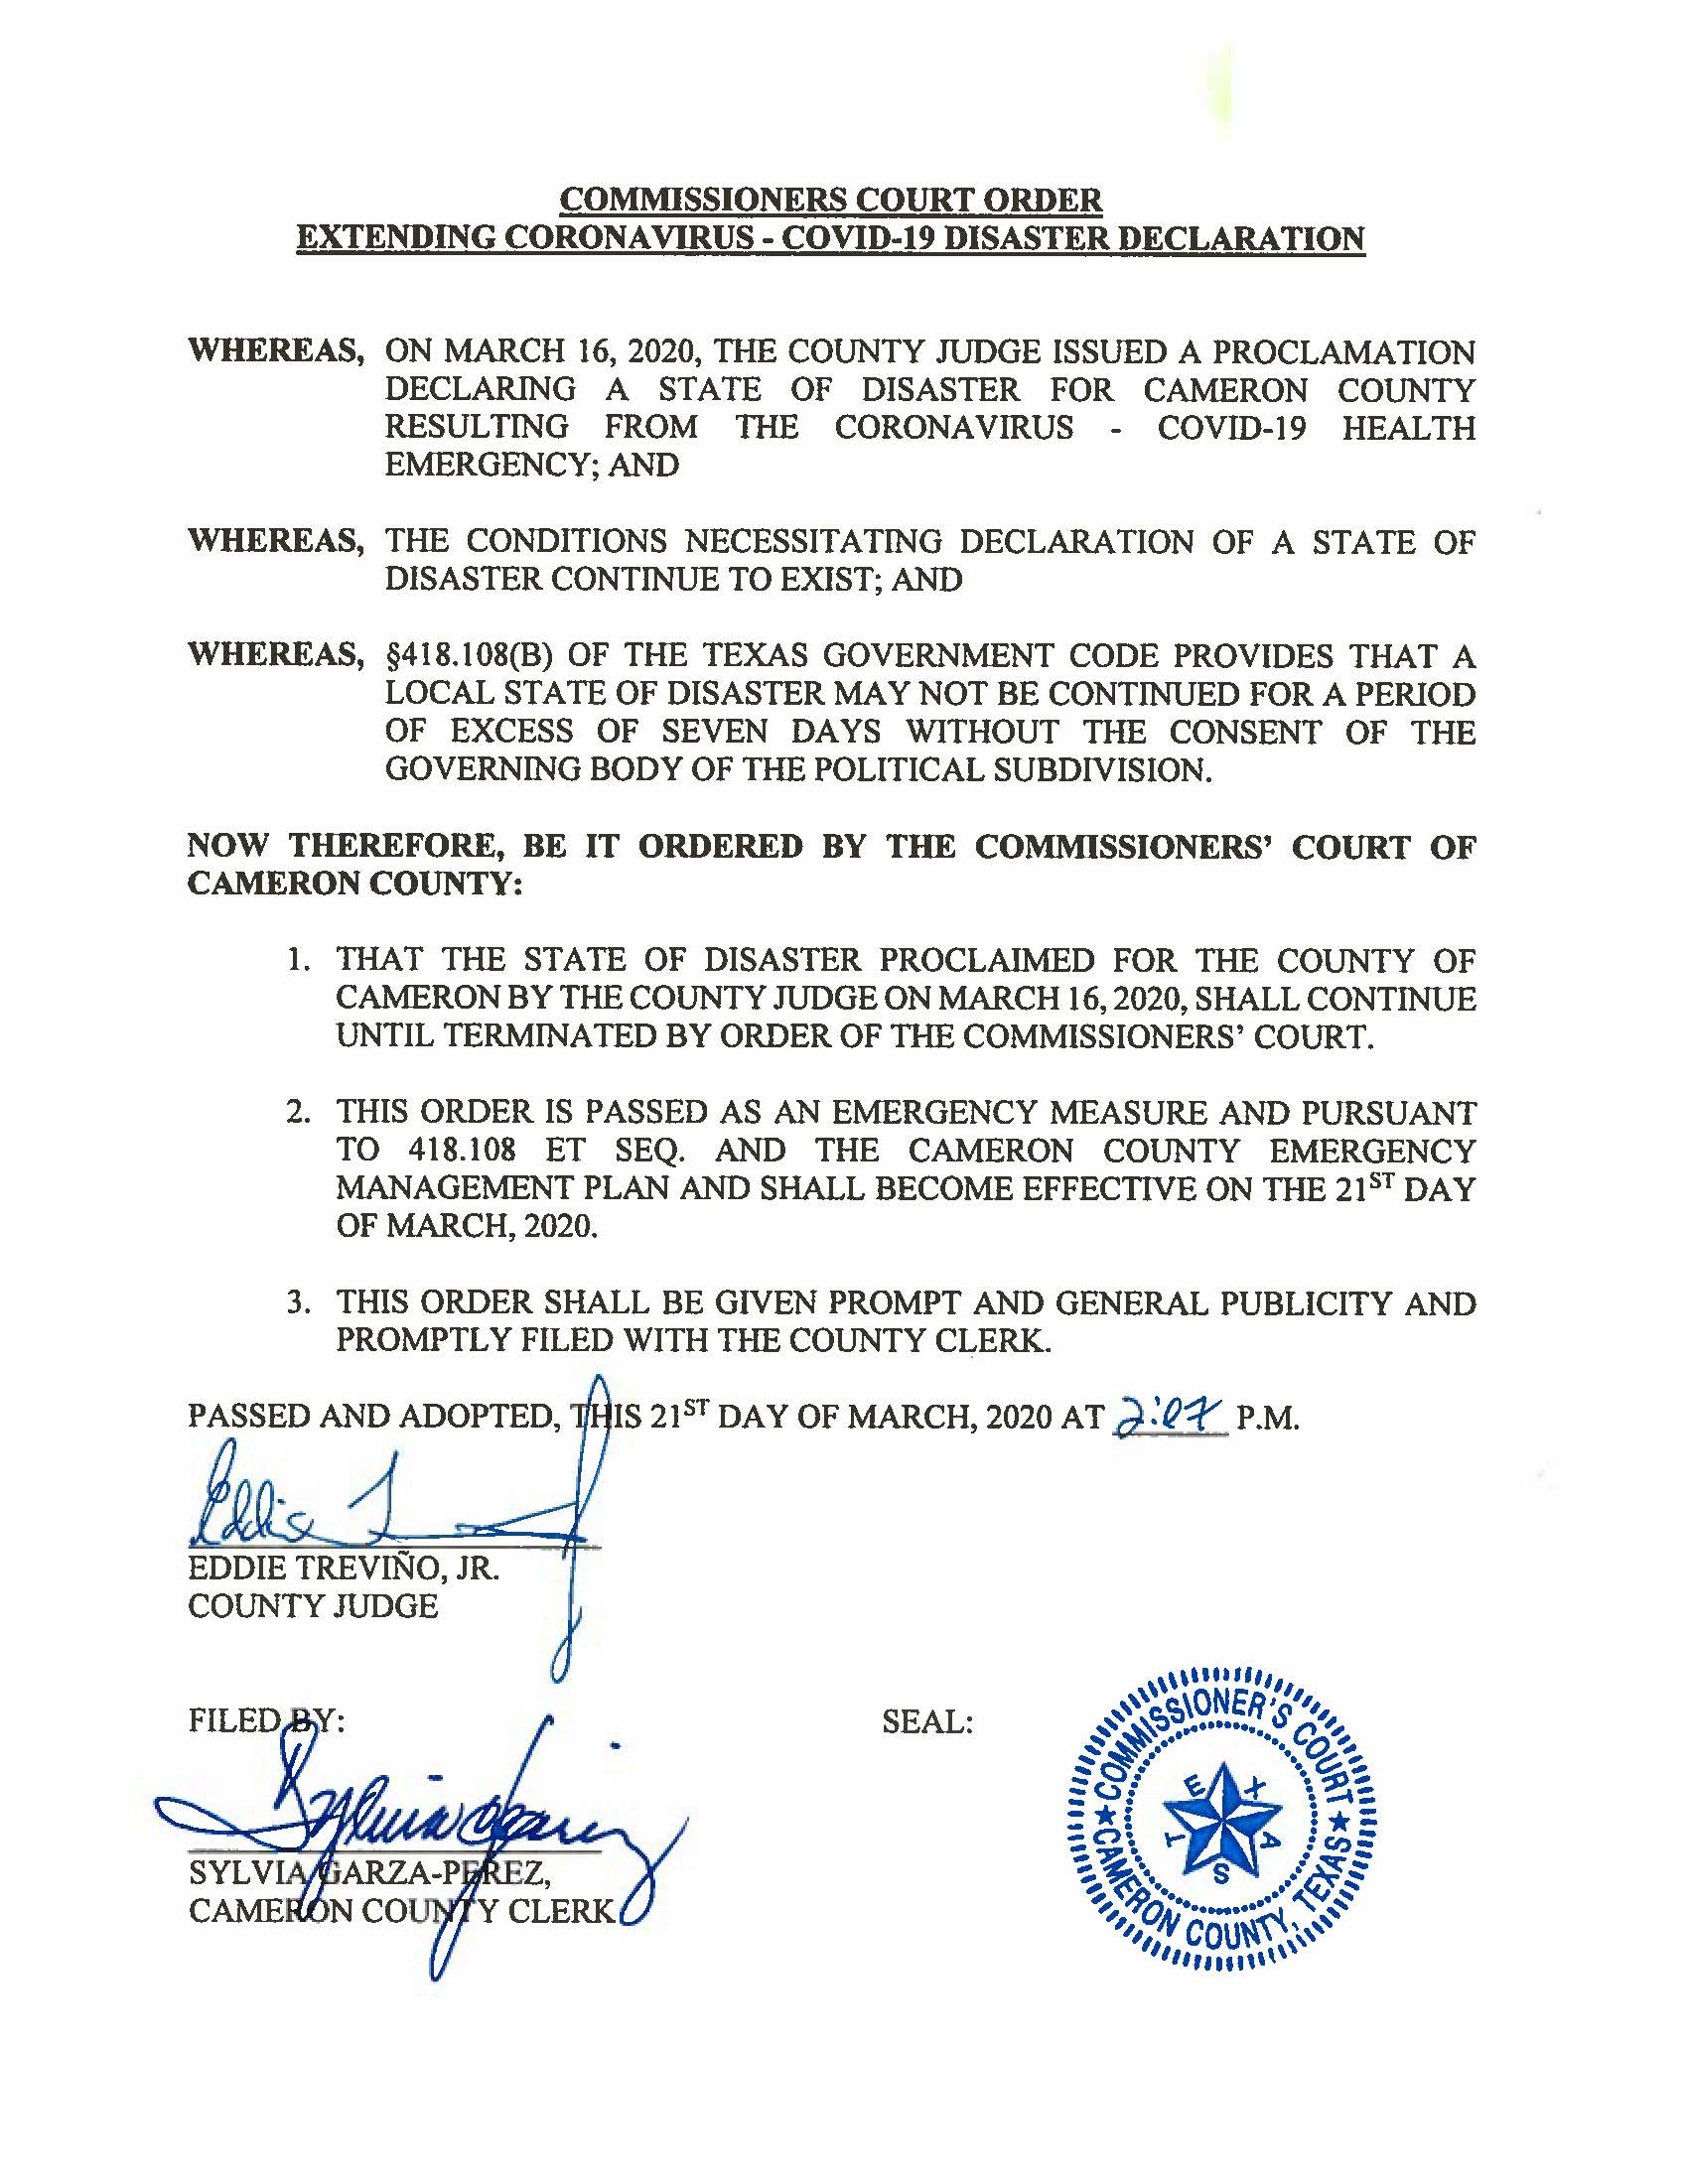 03.21.2020 Order Of Extension